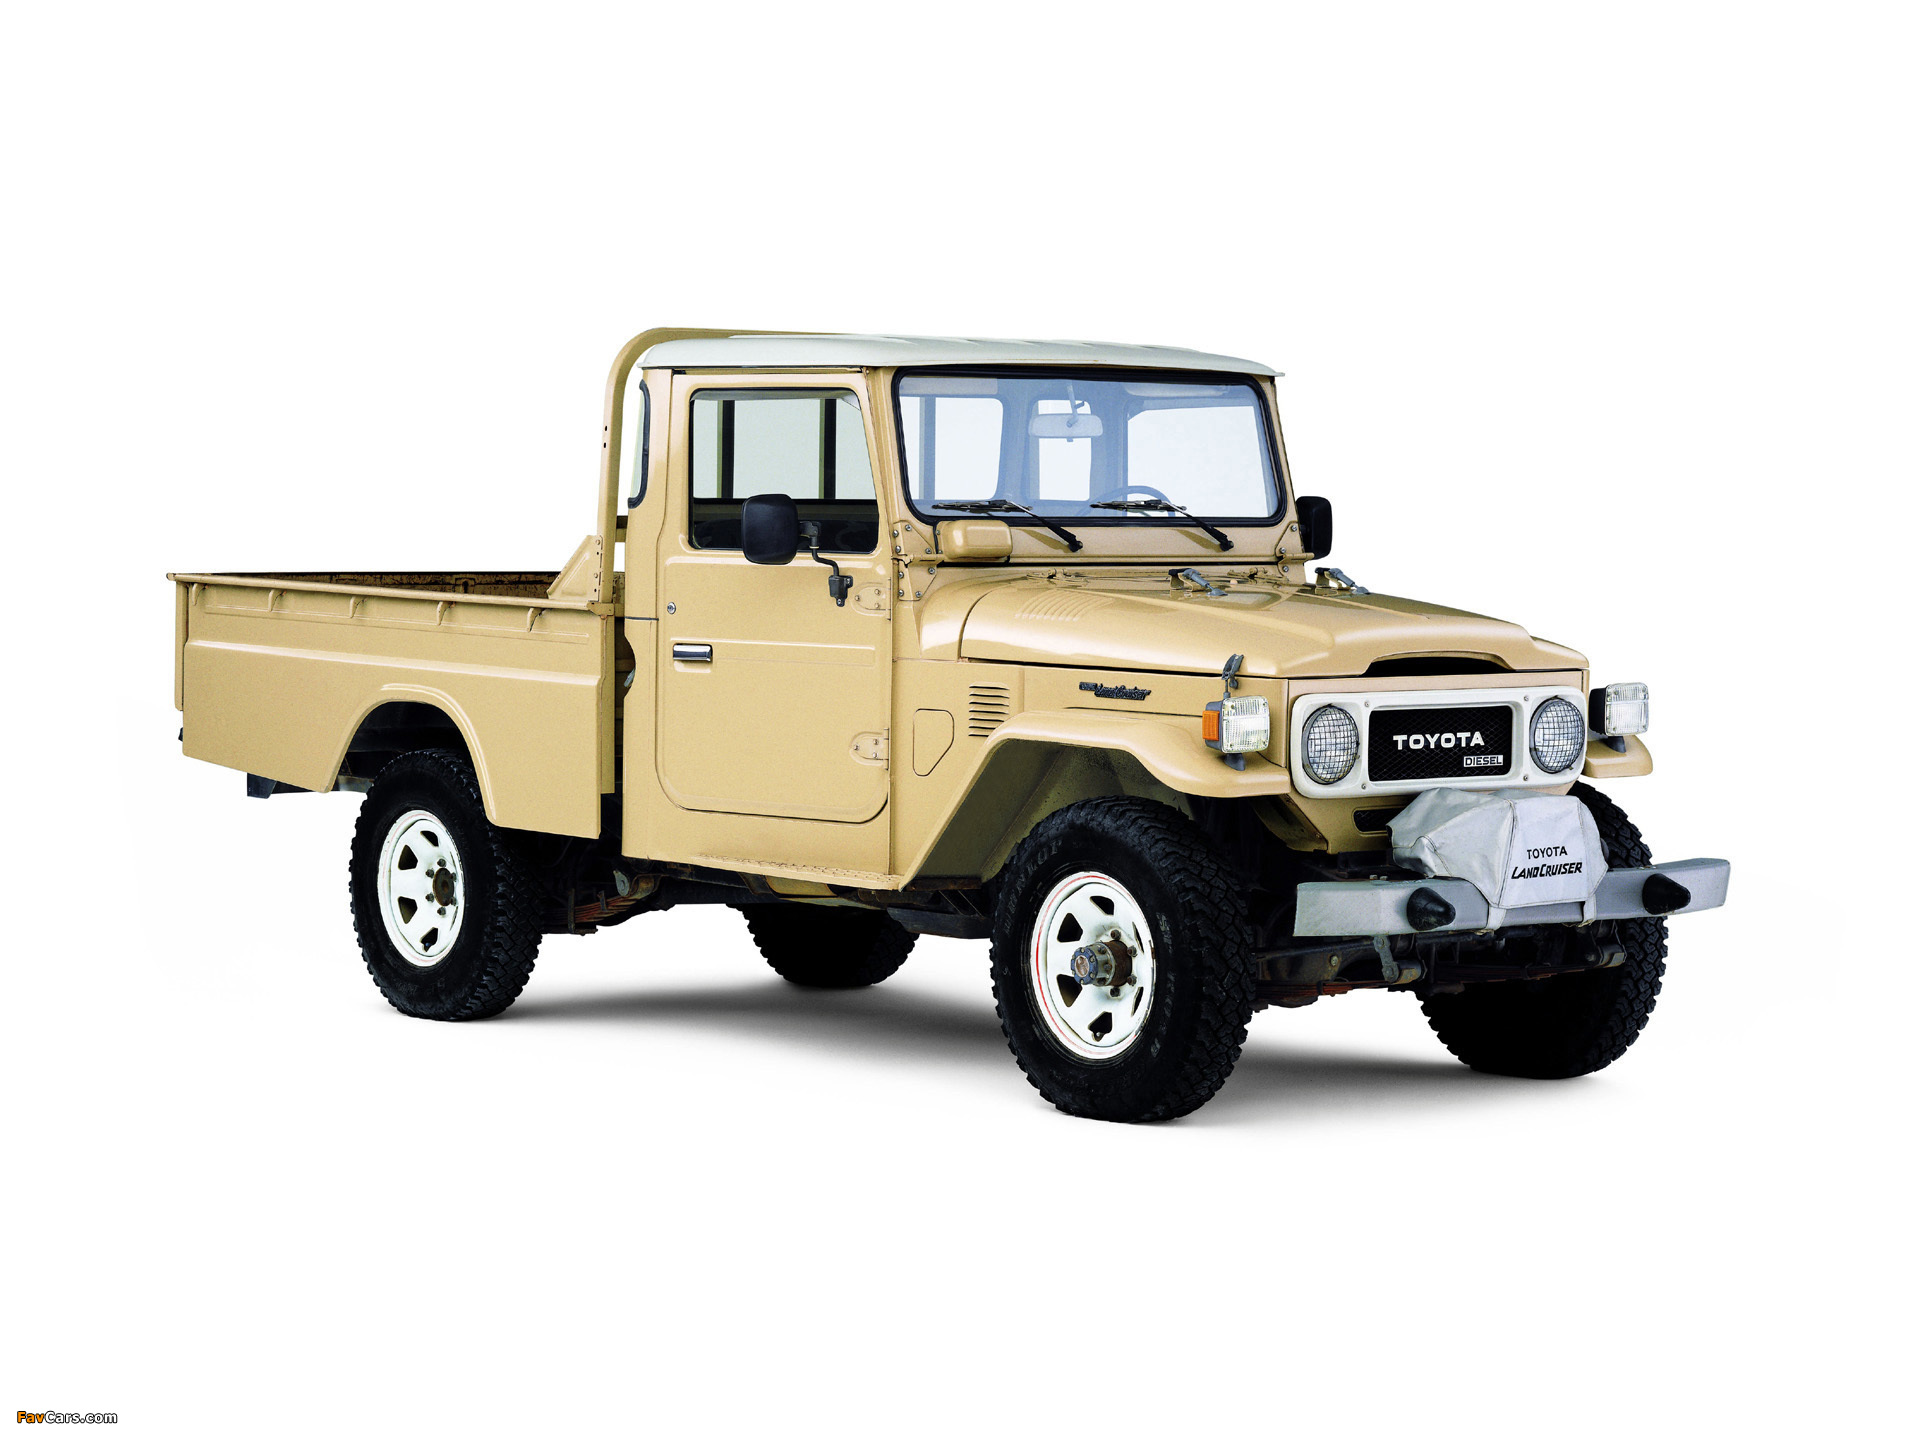 Land Rover Defender Vs Toyota Land Cruiser Pictures as well Customize likewise Vehicle together with Roofrack also 8013510355. on toyota cruiser